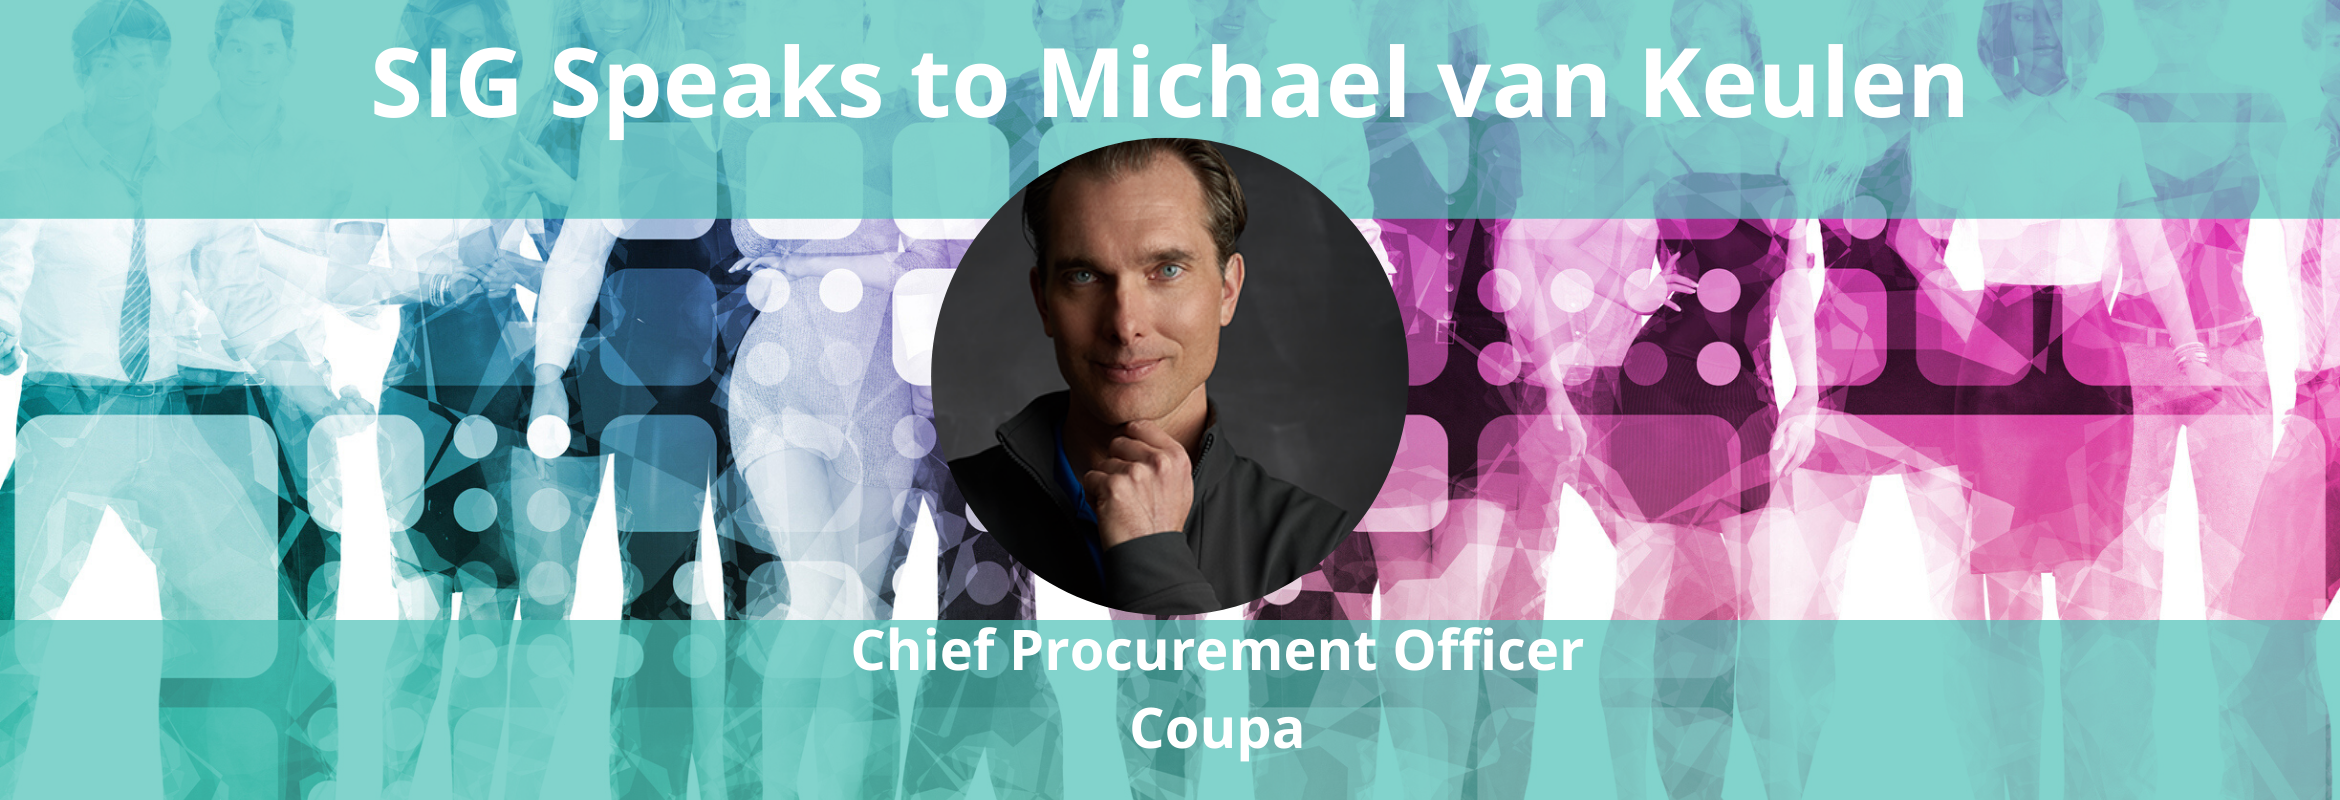 Michael van Keulen is the Chief Procurement Officer of Coupa